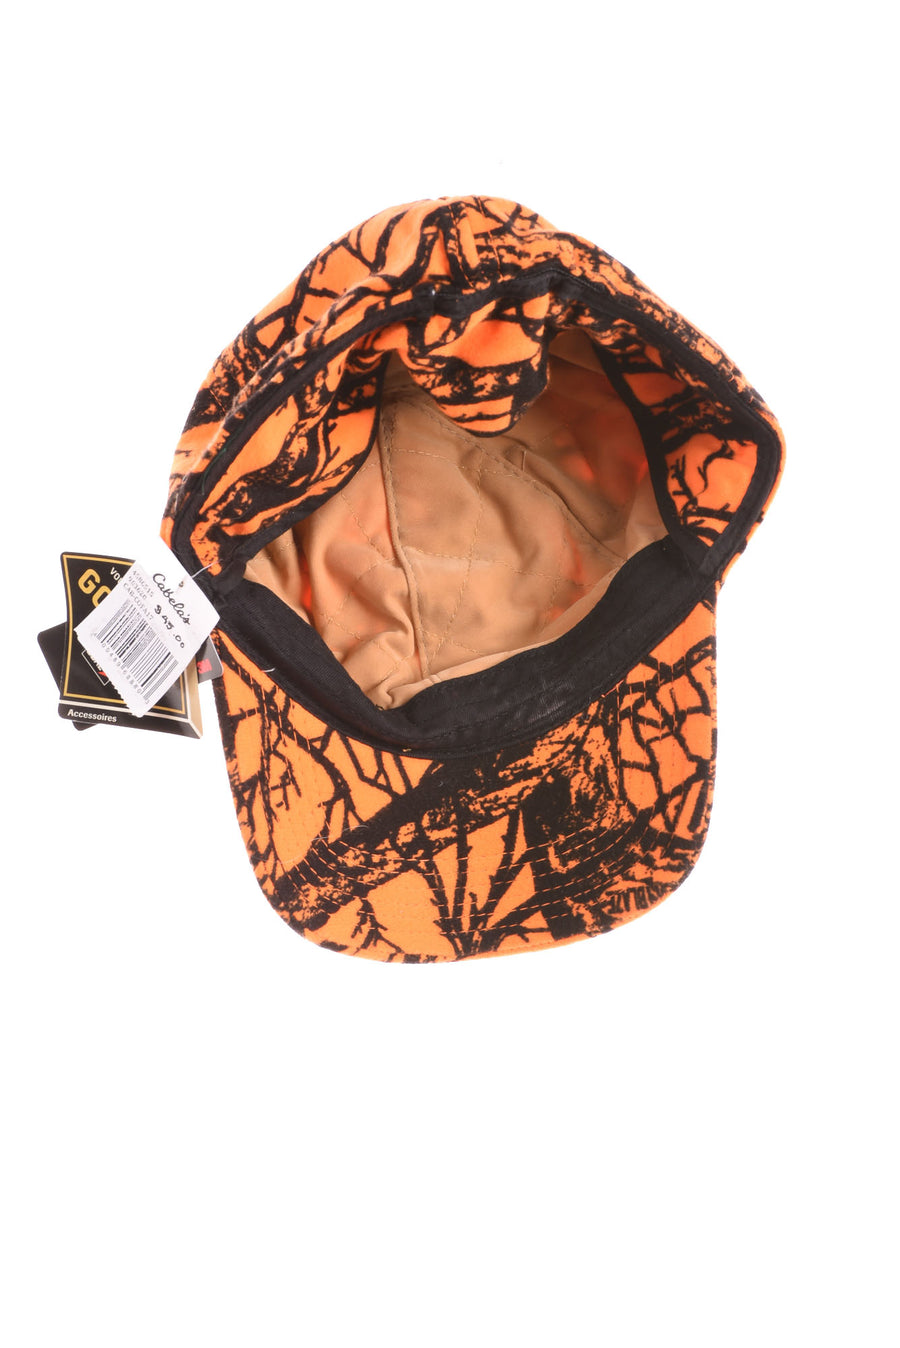 NEW Cabela's Men's Hat Medium Orange & Black